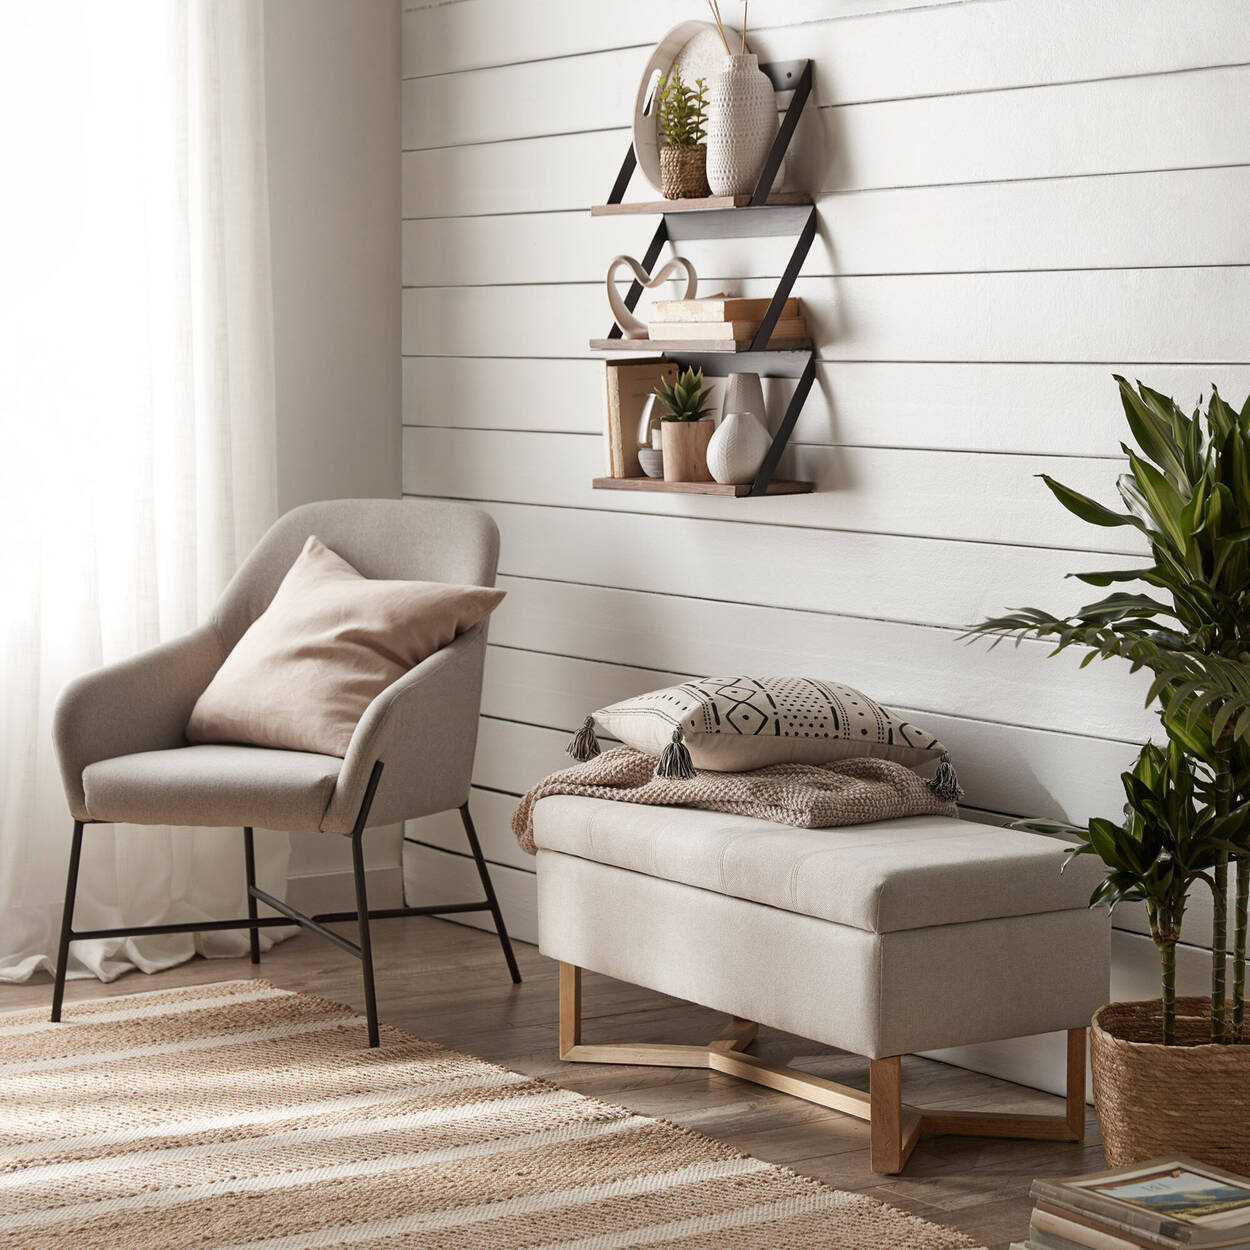 Fabric and Wood Storage Bench